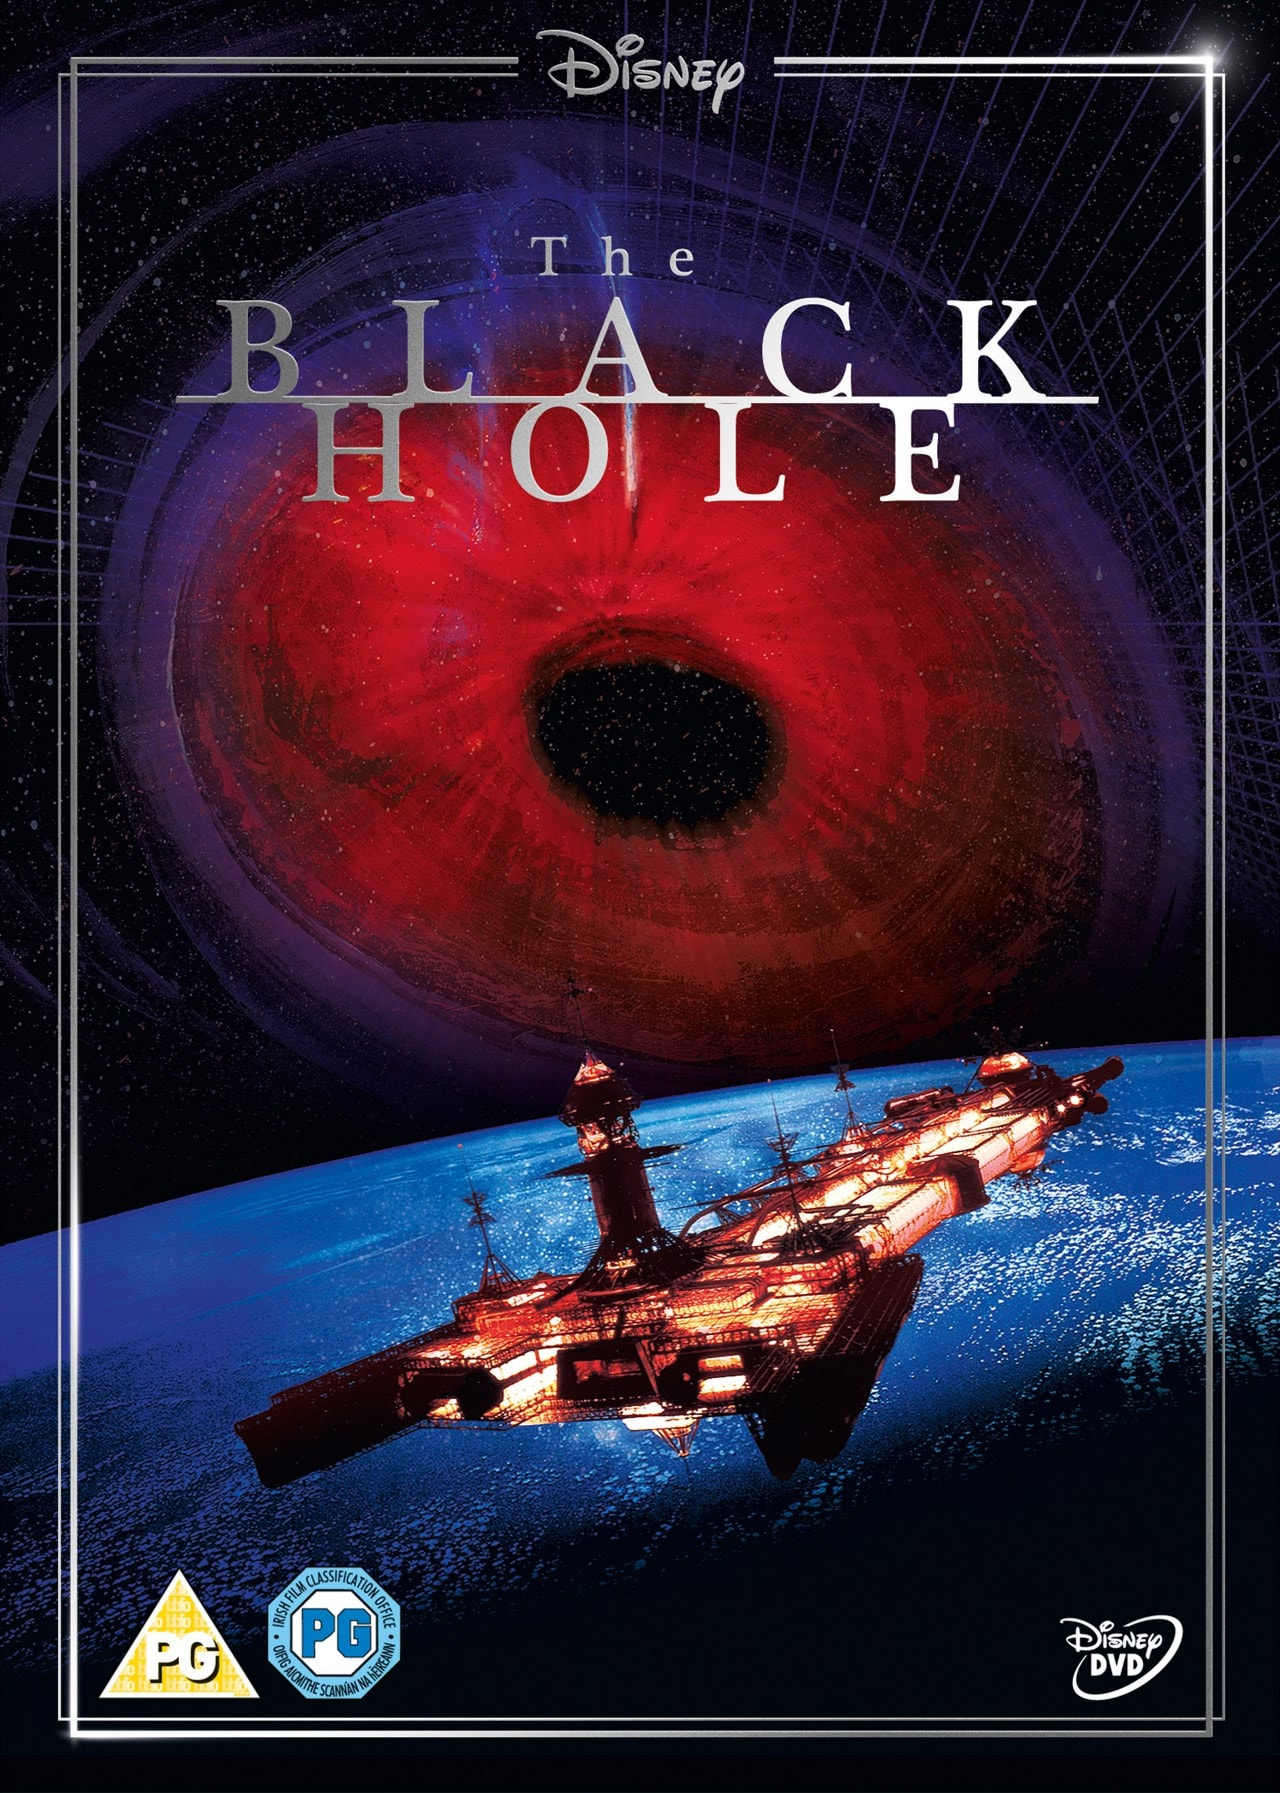 The Black Hole - 3